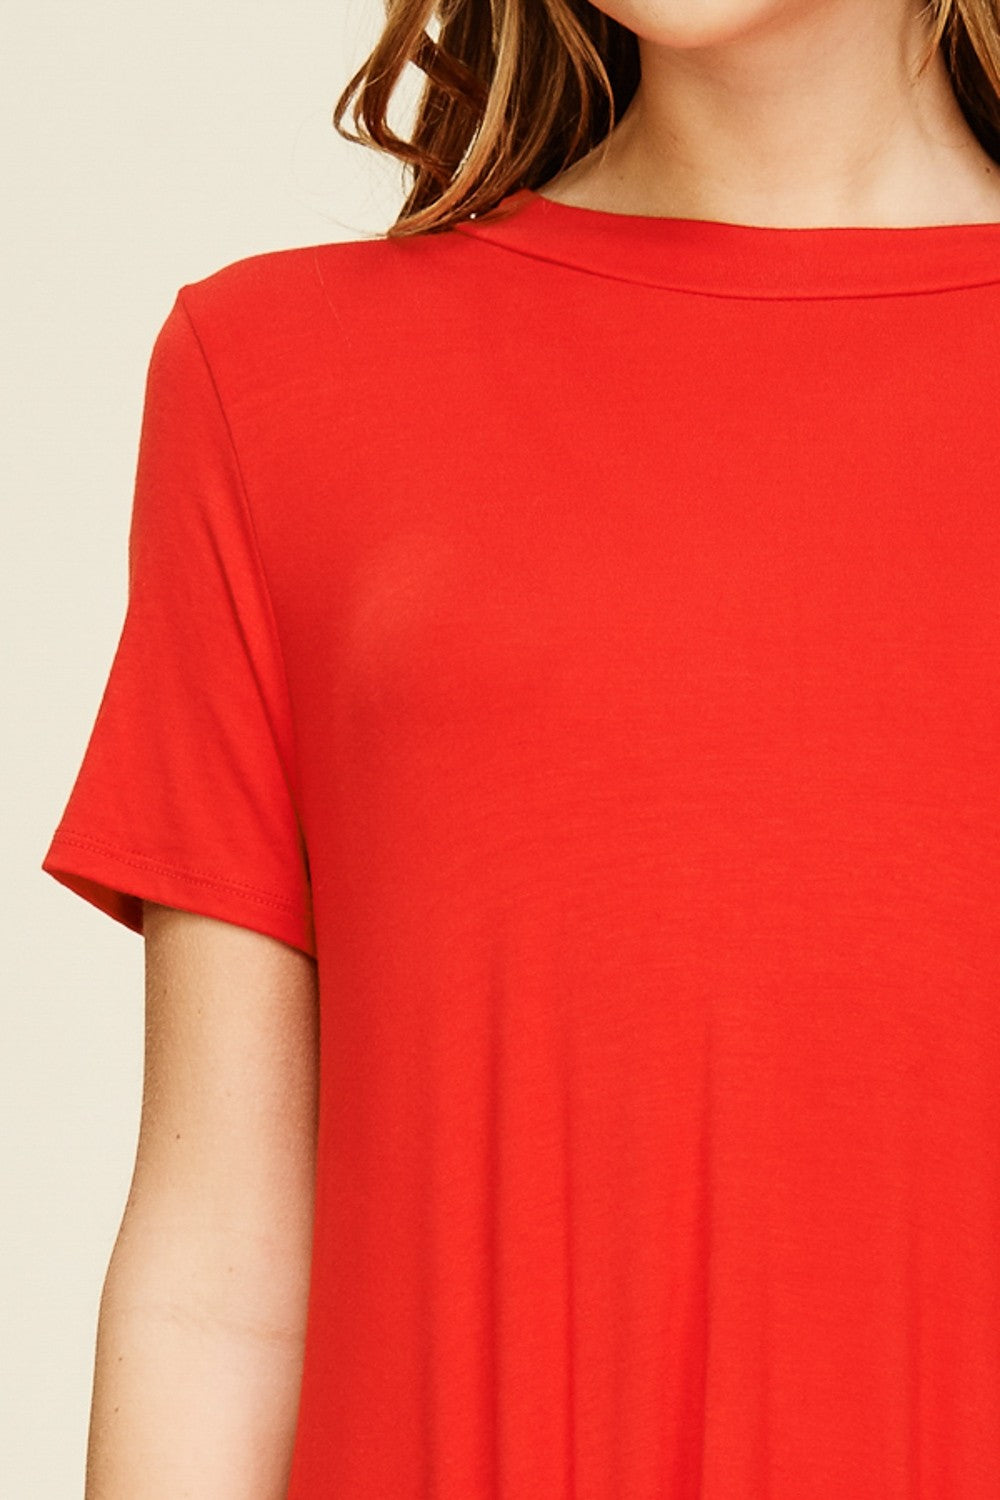 Front detail view poppy red extreme high low short sleeved top